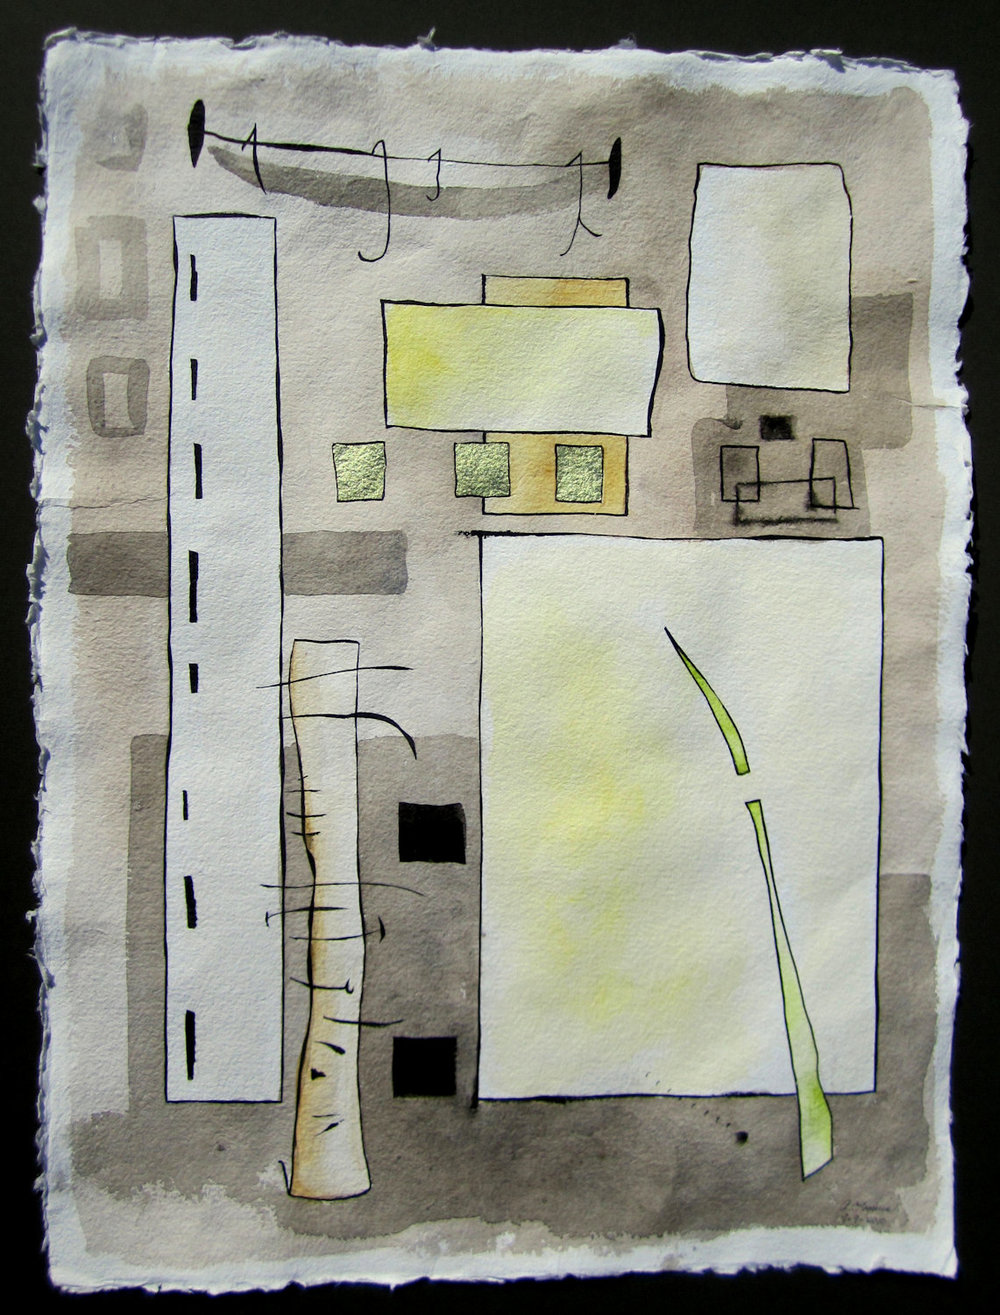 Anita Loomis,  Building 1010,  Watercolor, ink and gilding, 30x20